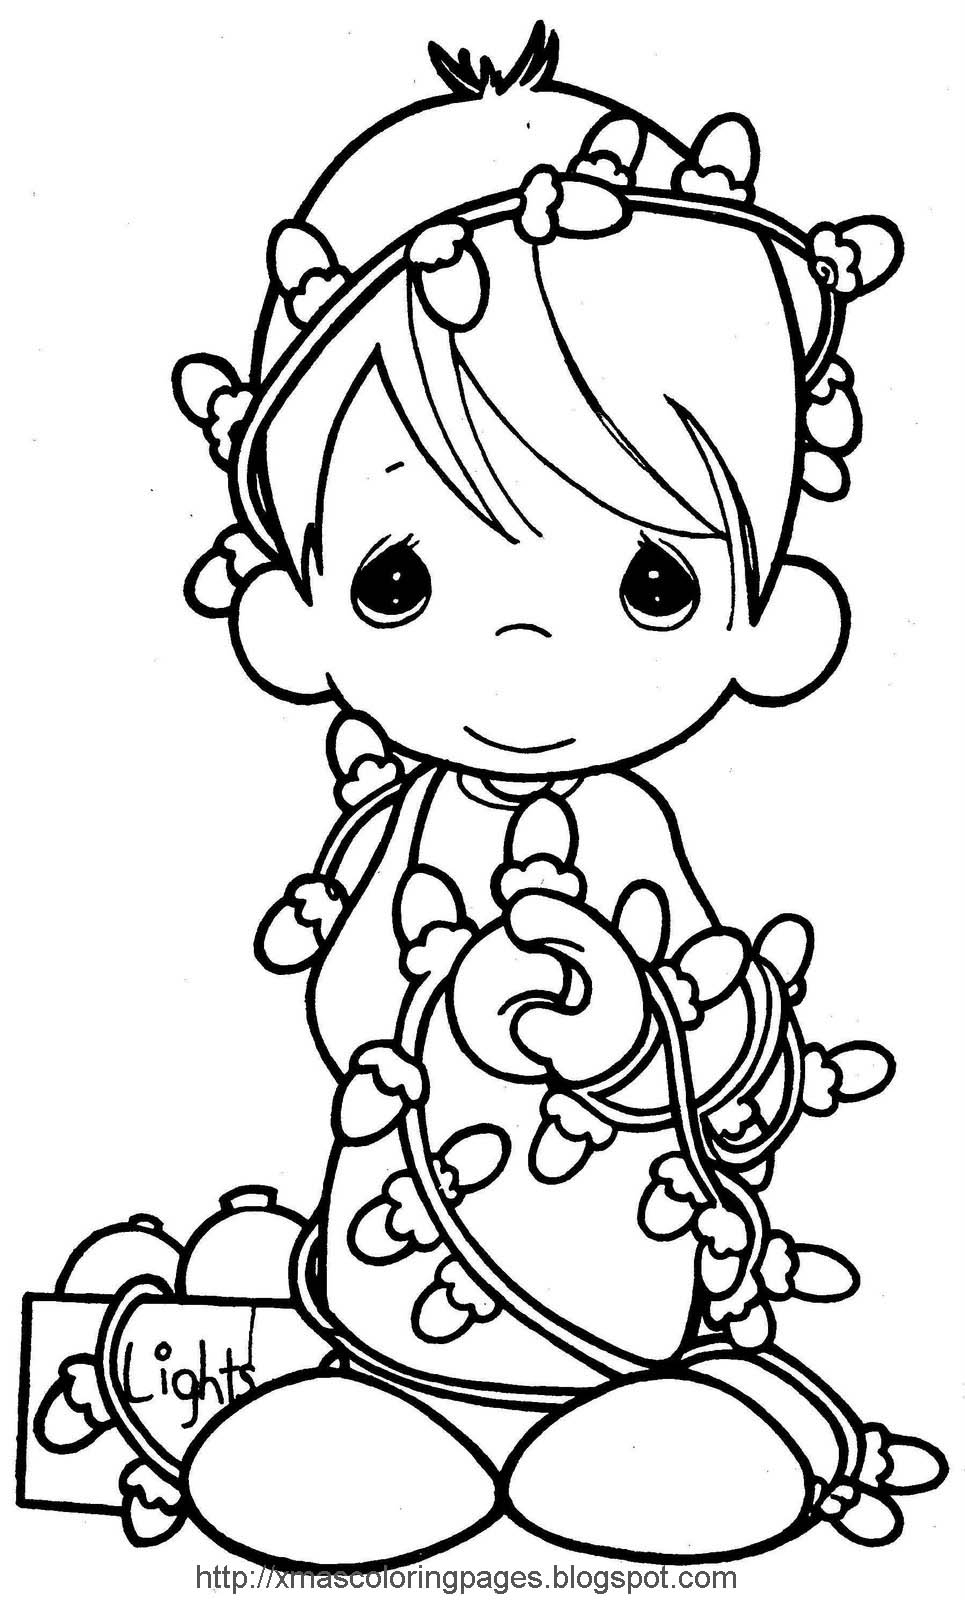 XMAS COLORING PAGES | christmas coloring pages  book